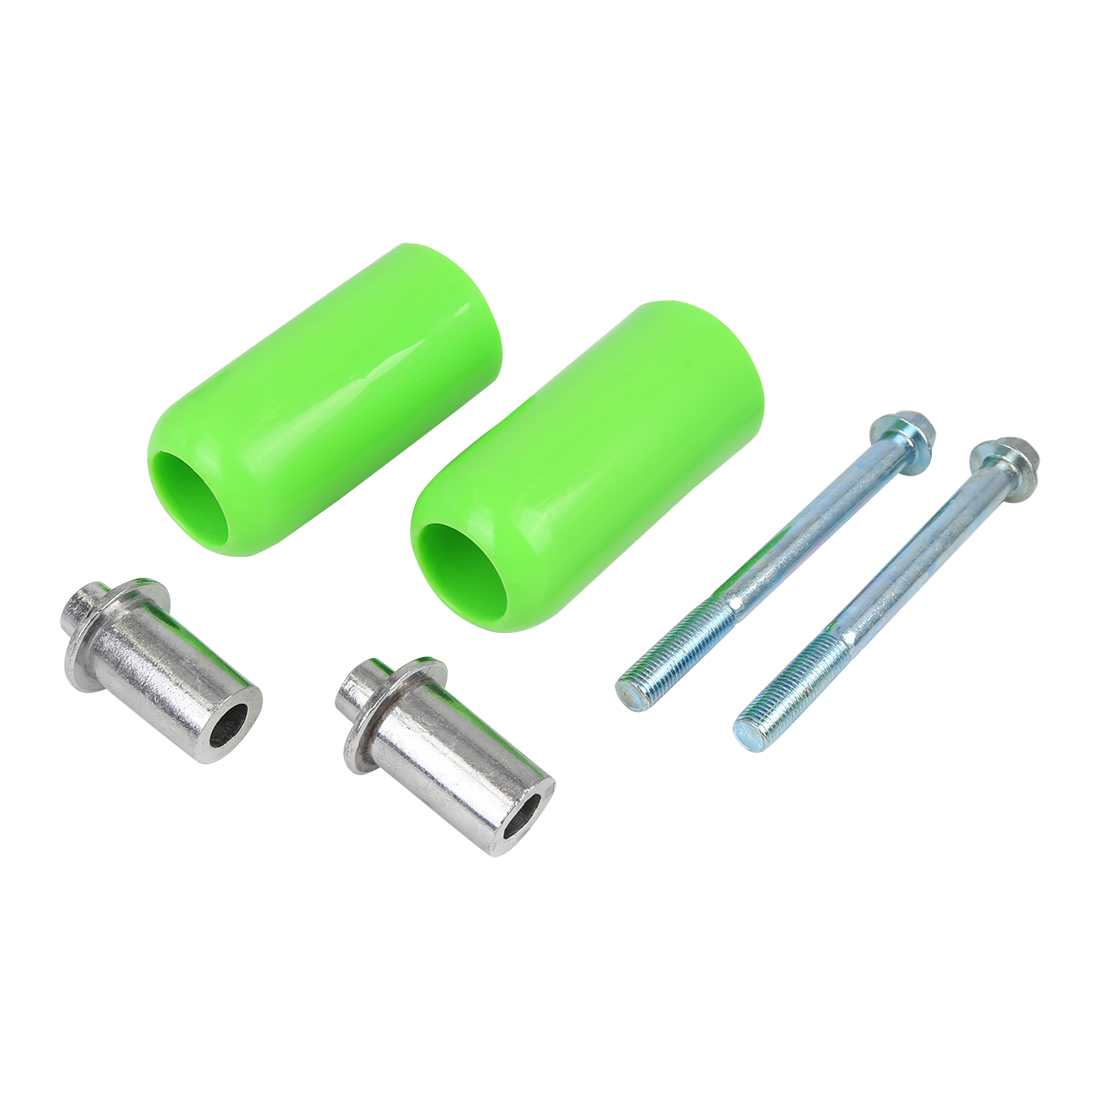 Pair 10mm Motorcycle Frame Sliders Universal Extended Anti Crash Protector Green